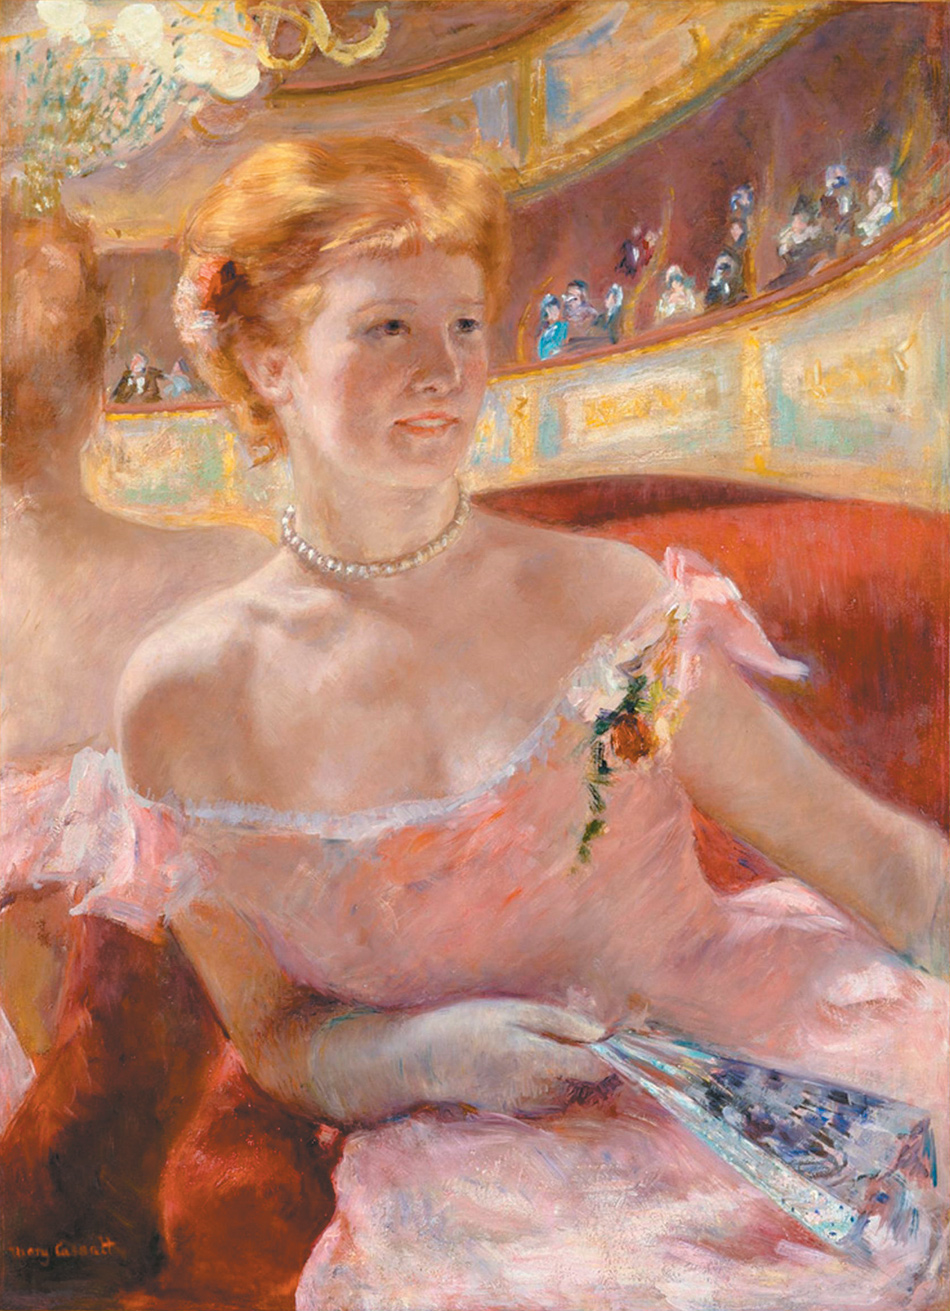 Mary Cassatt: Woman with a Pearl Necklace in a Loge, 32 x 23 1/2 inches, 1879